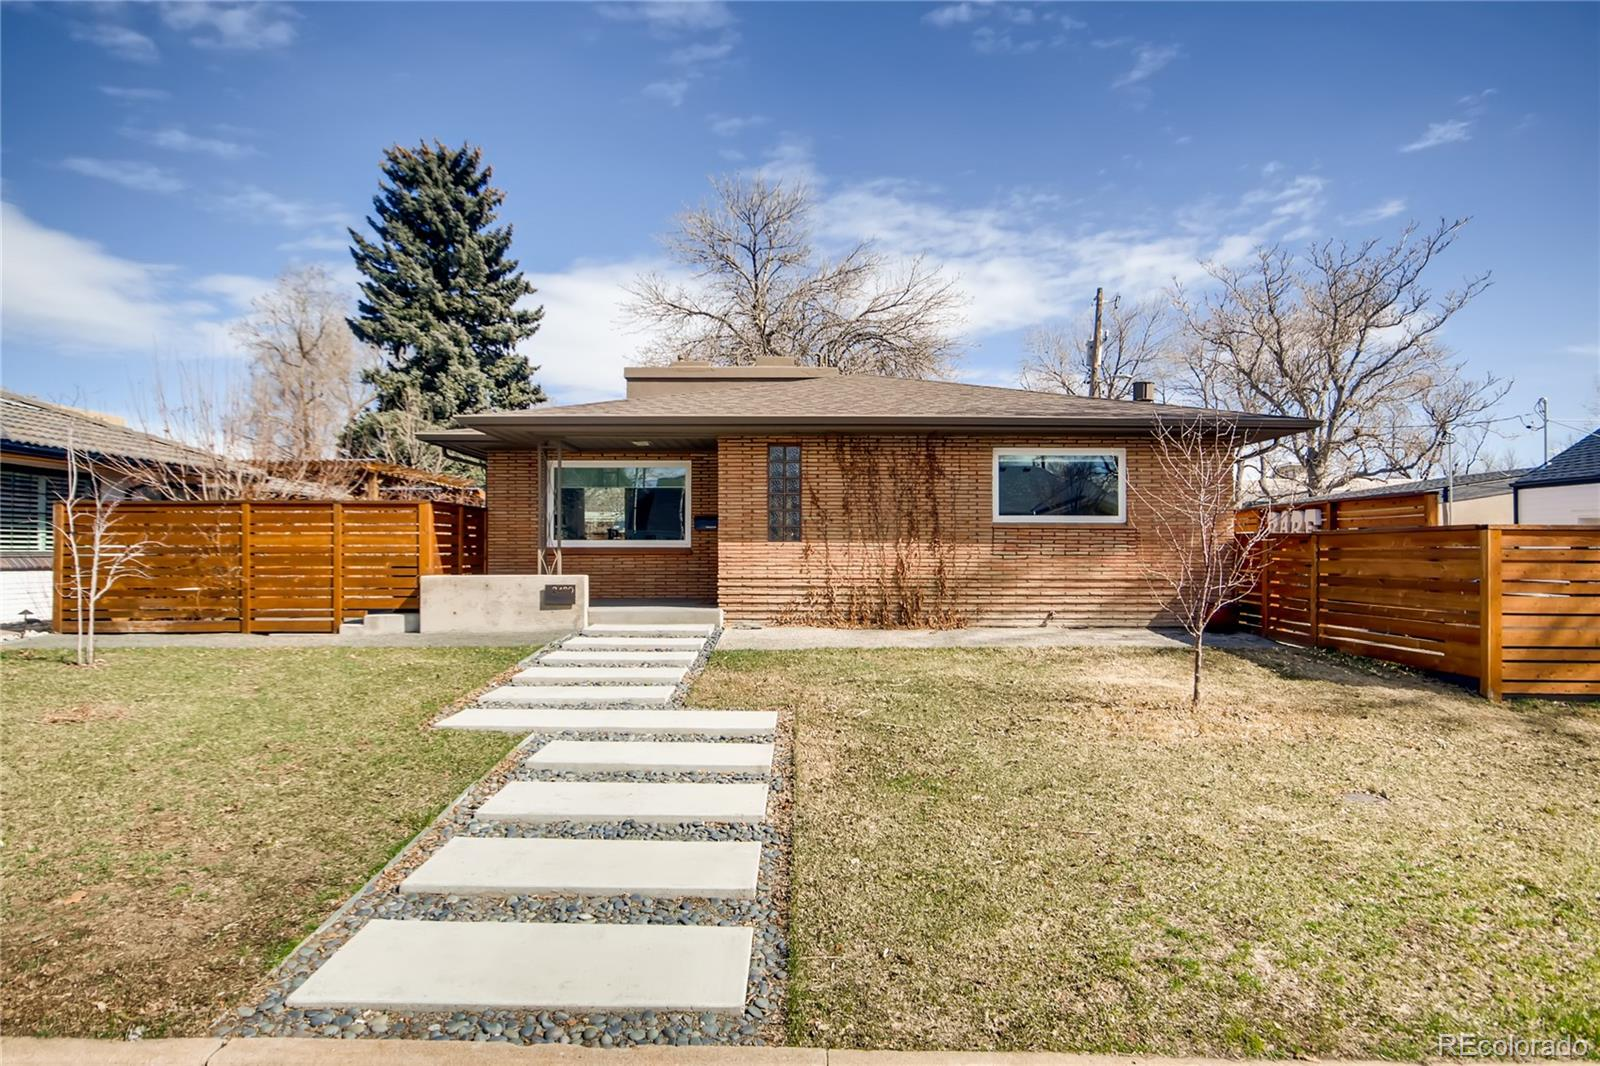 MLS# 6749846 - 2480 Perry Street, Denver, CO 80212